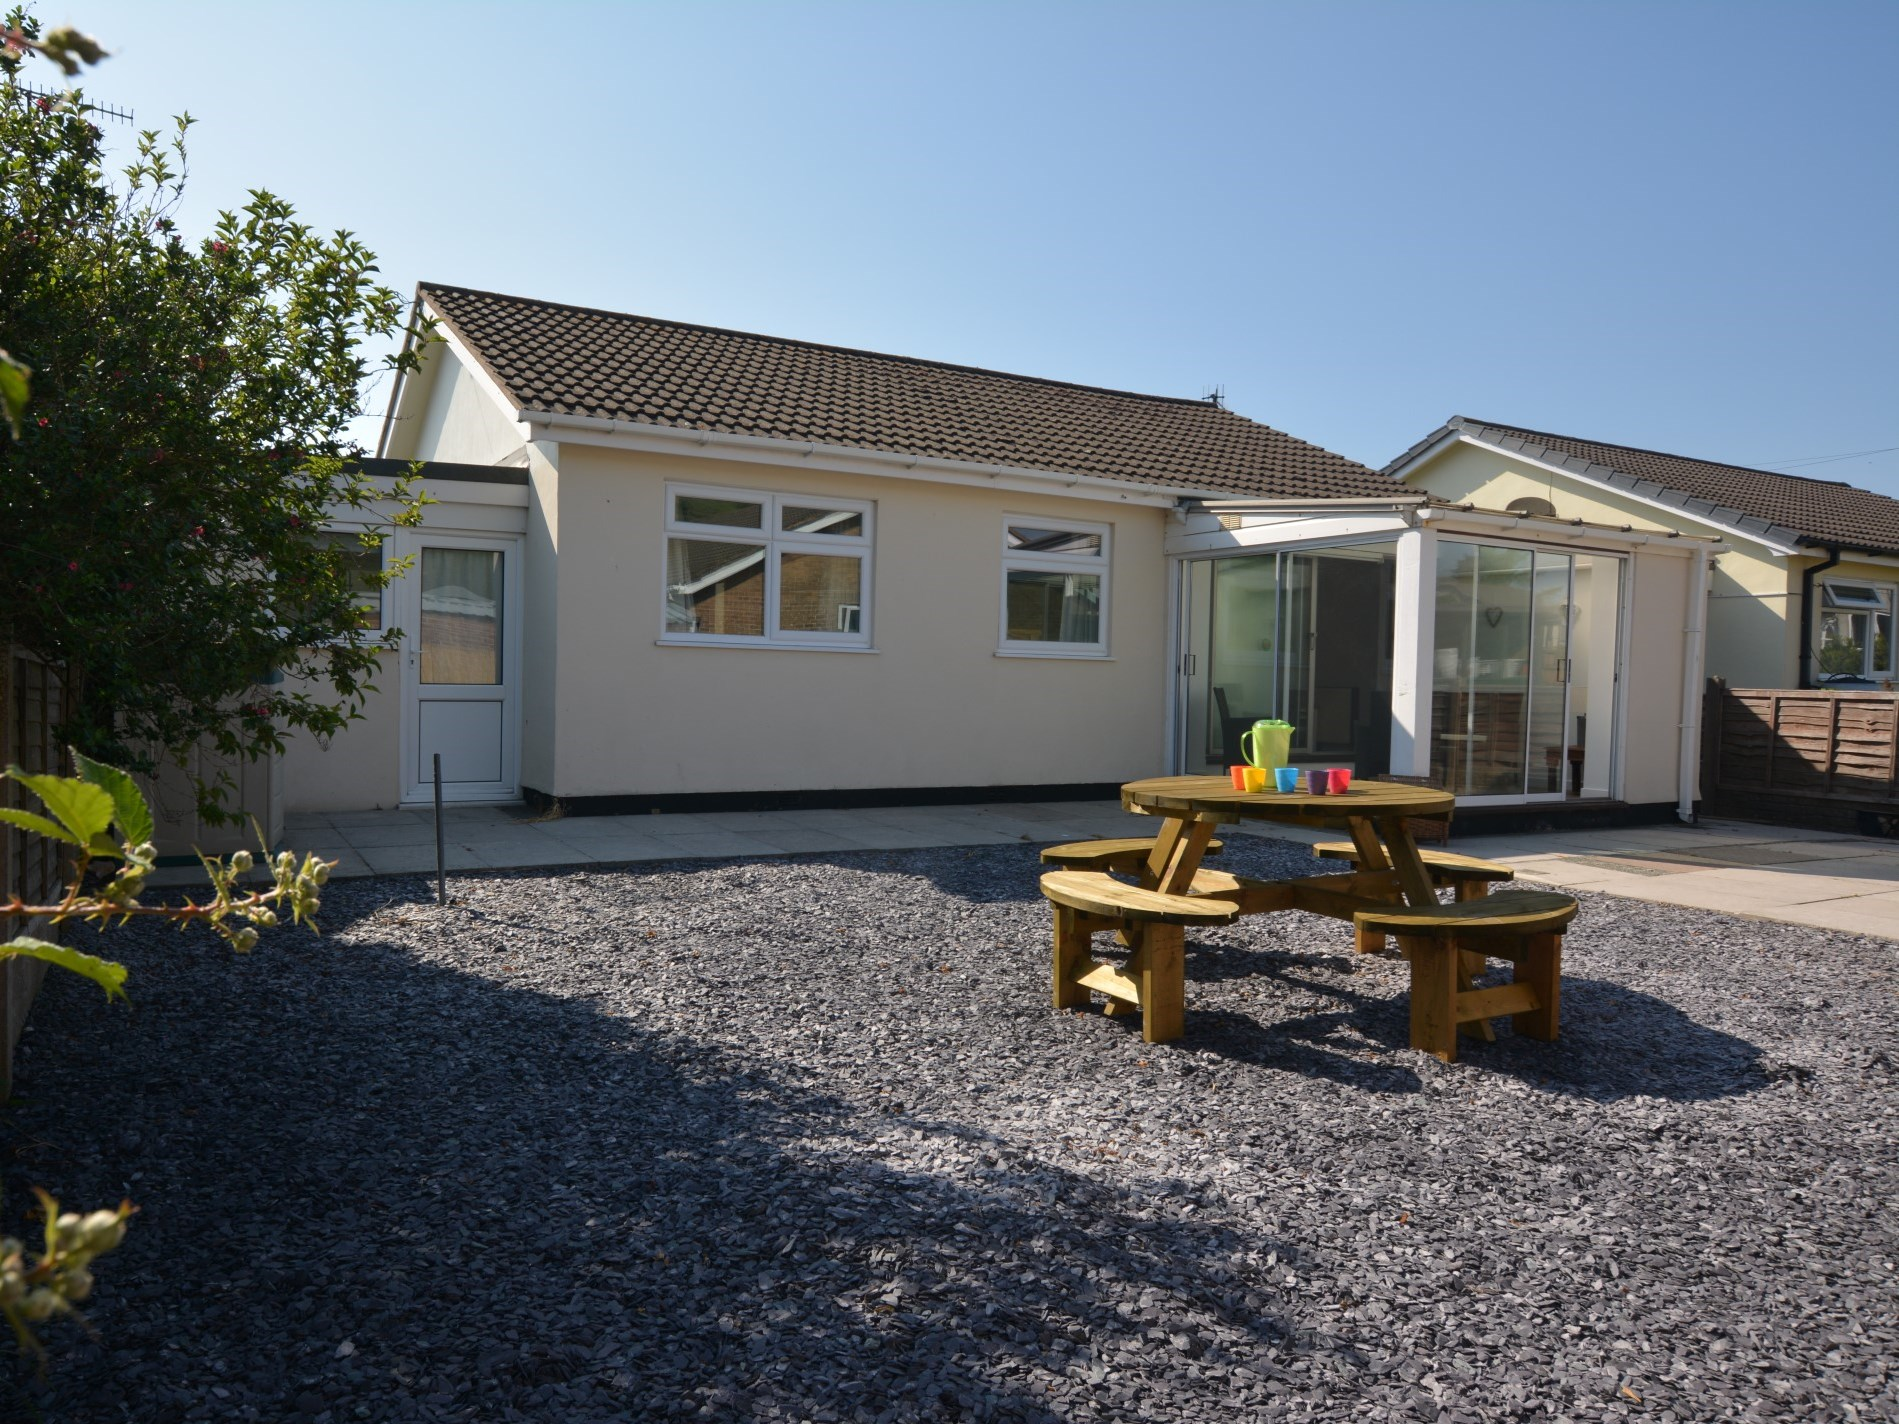 3 Bedroom Cottage in Fairbourne, Snowdonia, North Wales and Cheshire